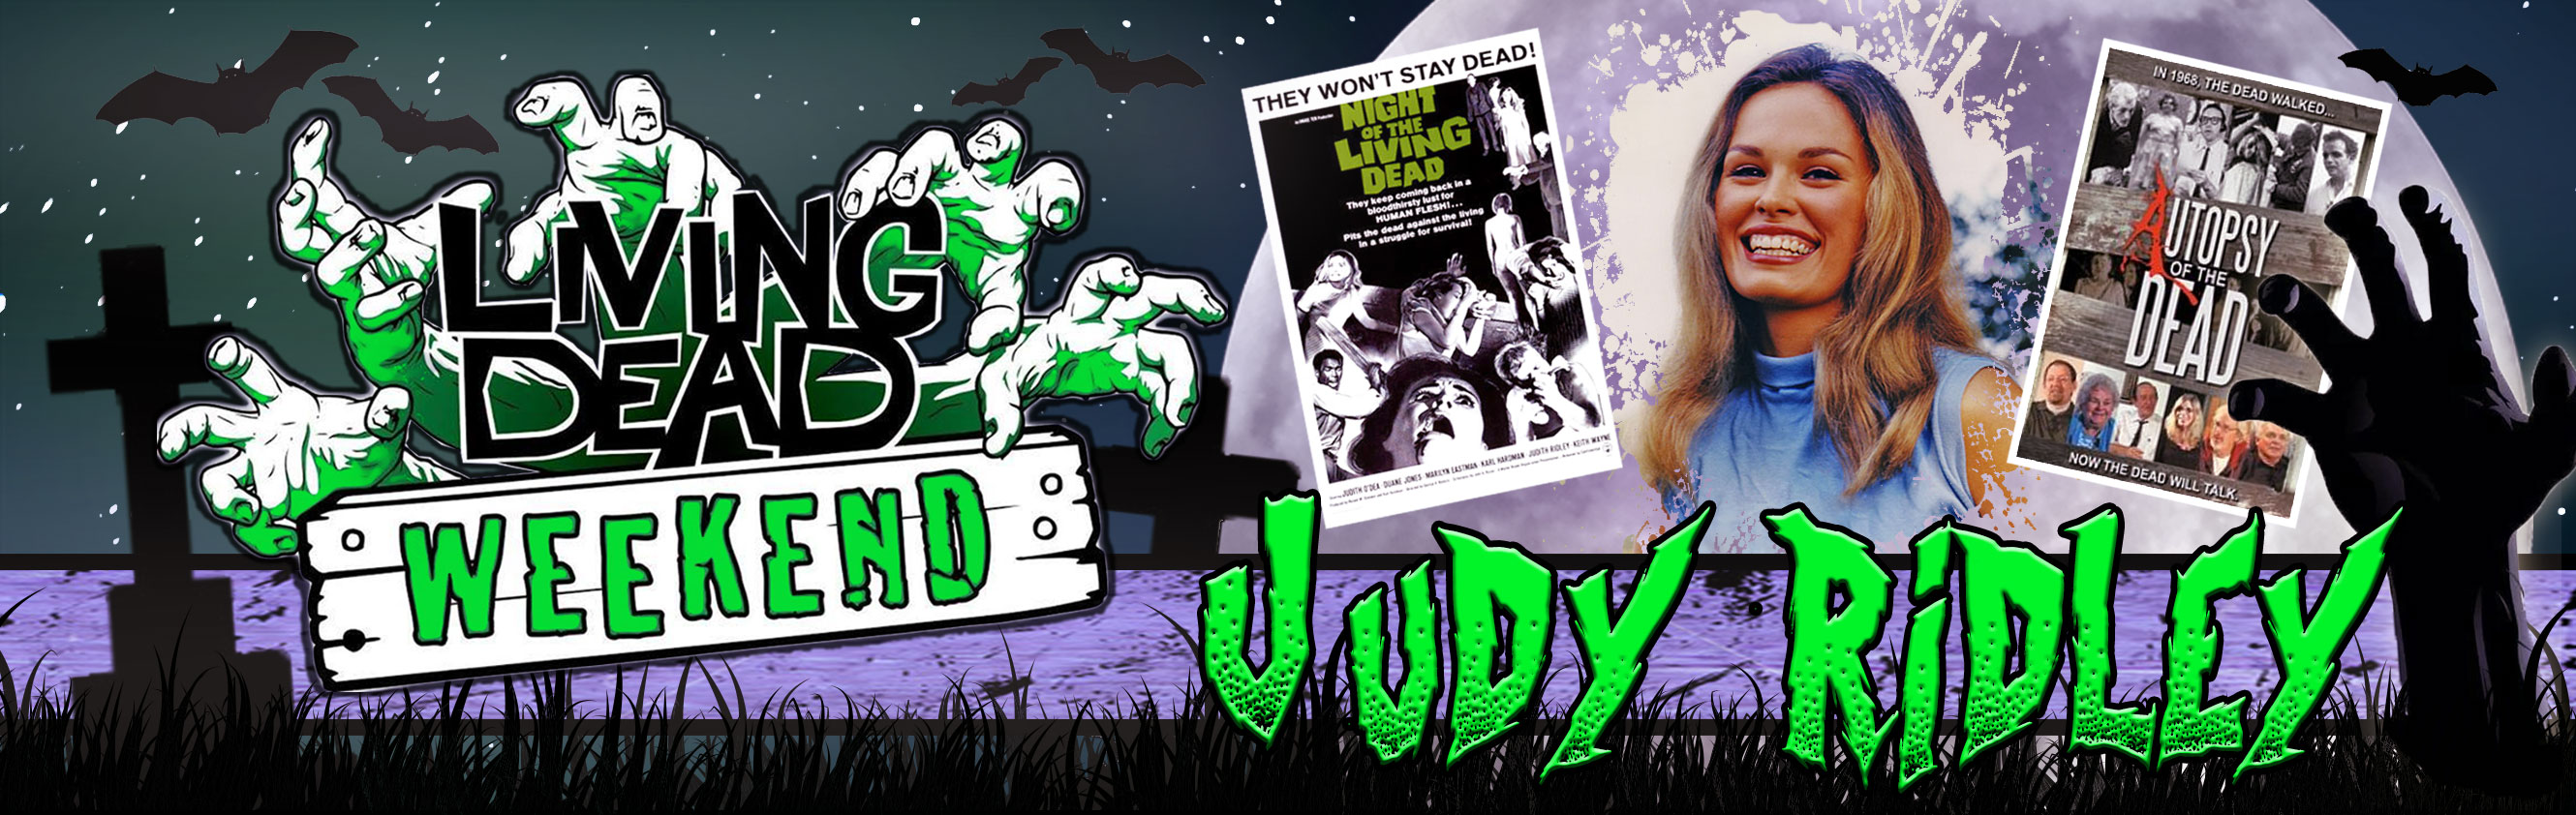 Night of the Living Dead's Judy Ridley will be a guest at the Living Dead Weekend 2016